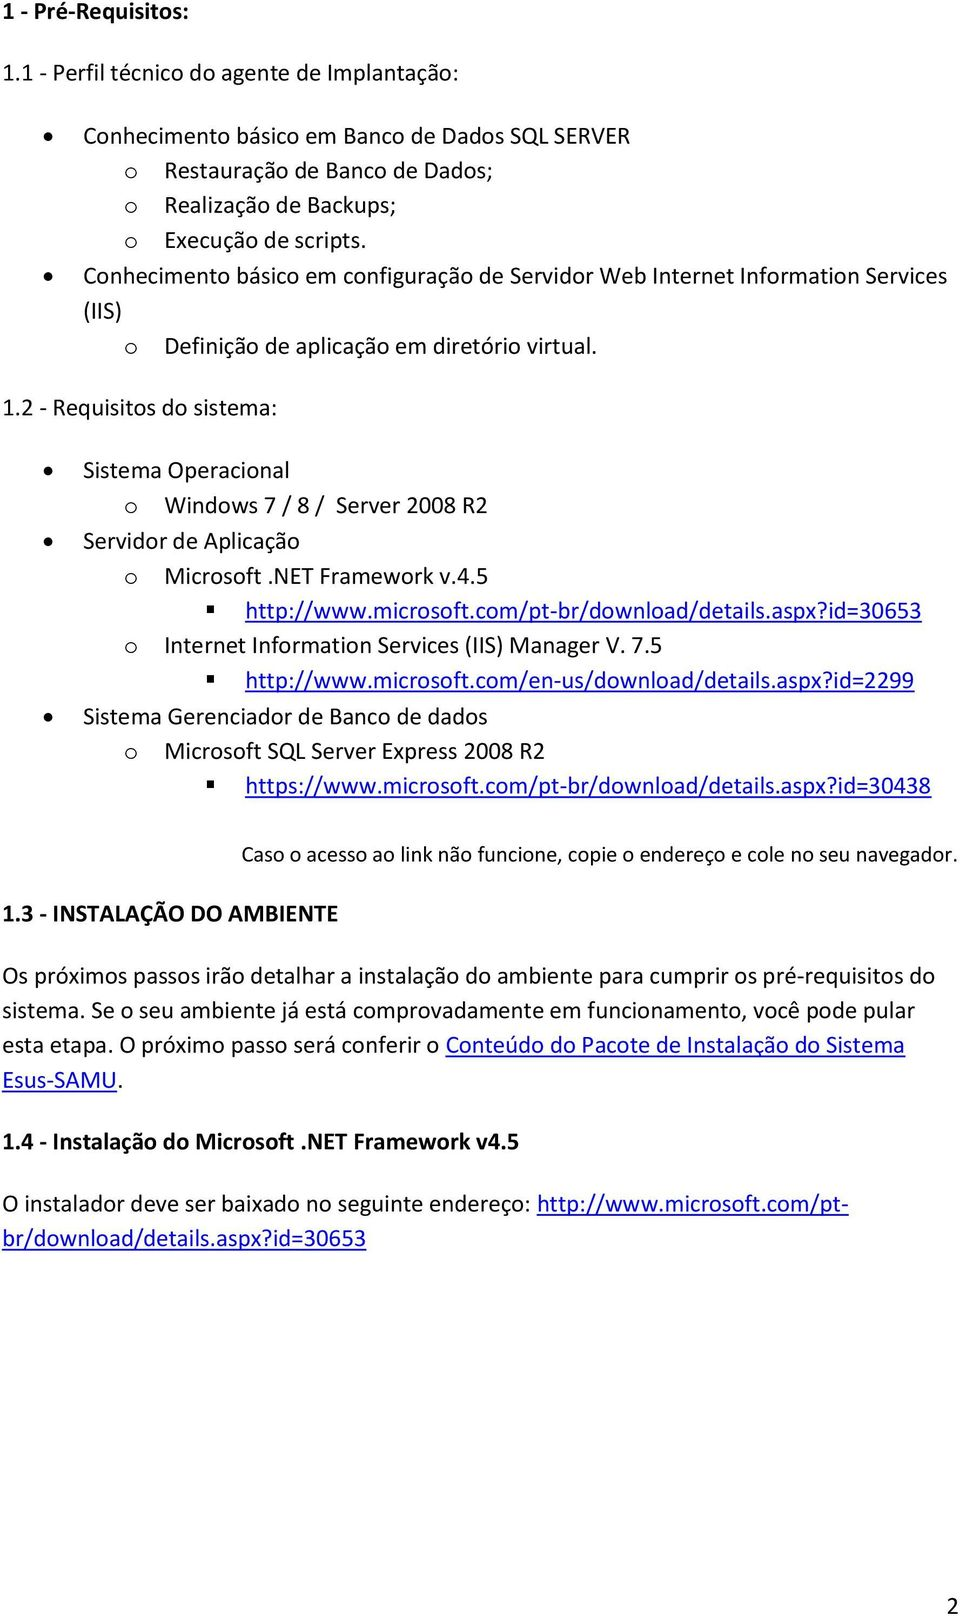 2 - Requisitos do sistema: Sistema Operacional o Windows 7 / 8 / Server 2008 R2 Servidor de Aplicação o Microsoft.NET Framework v.4.5 http://www.microsoft.com/pt-br/download/details.aspx?